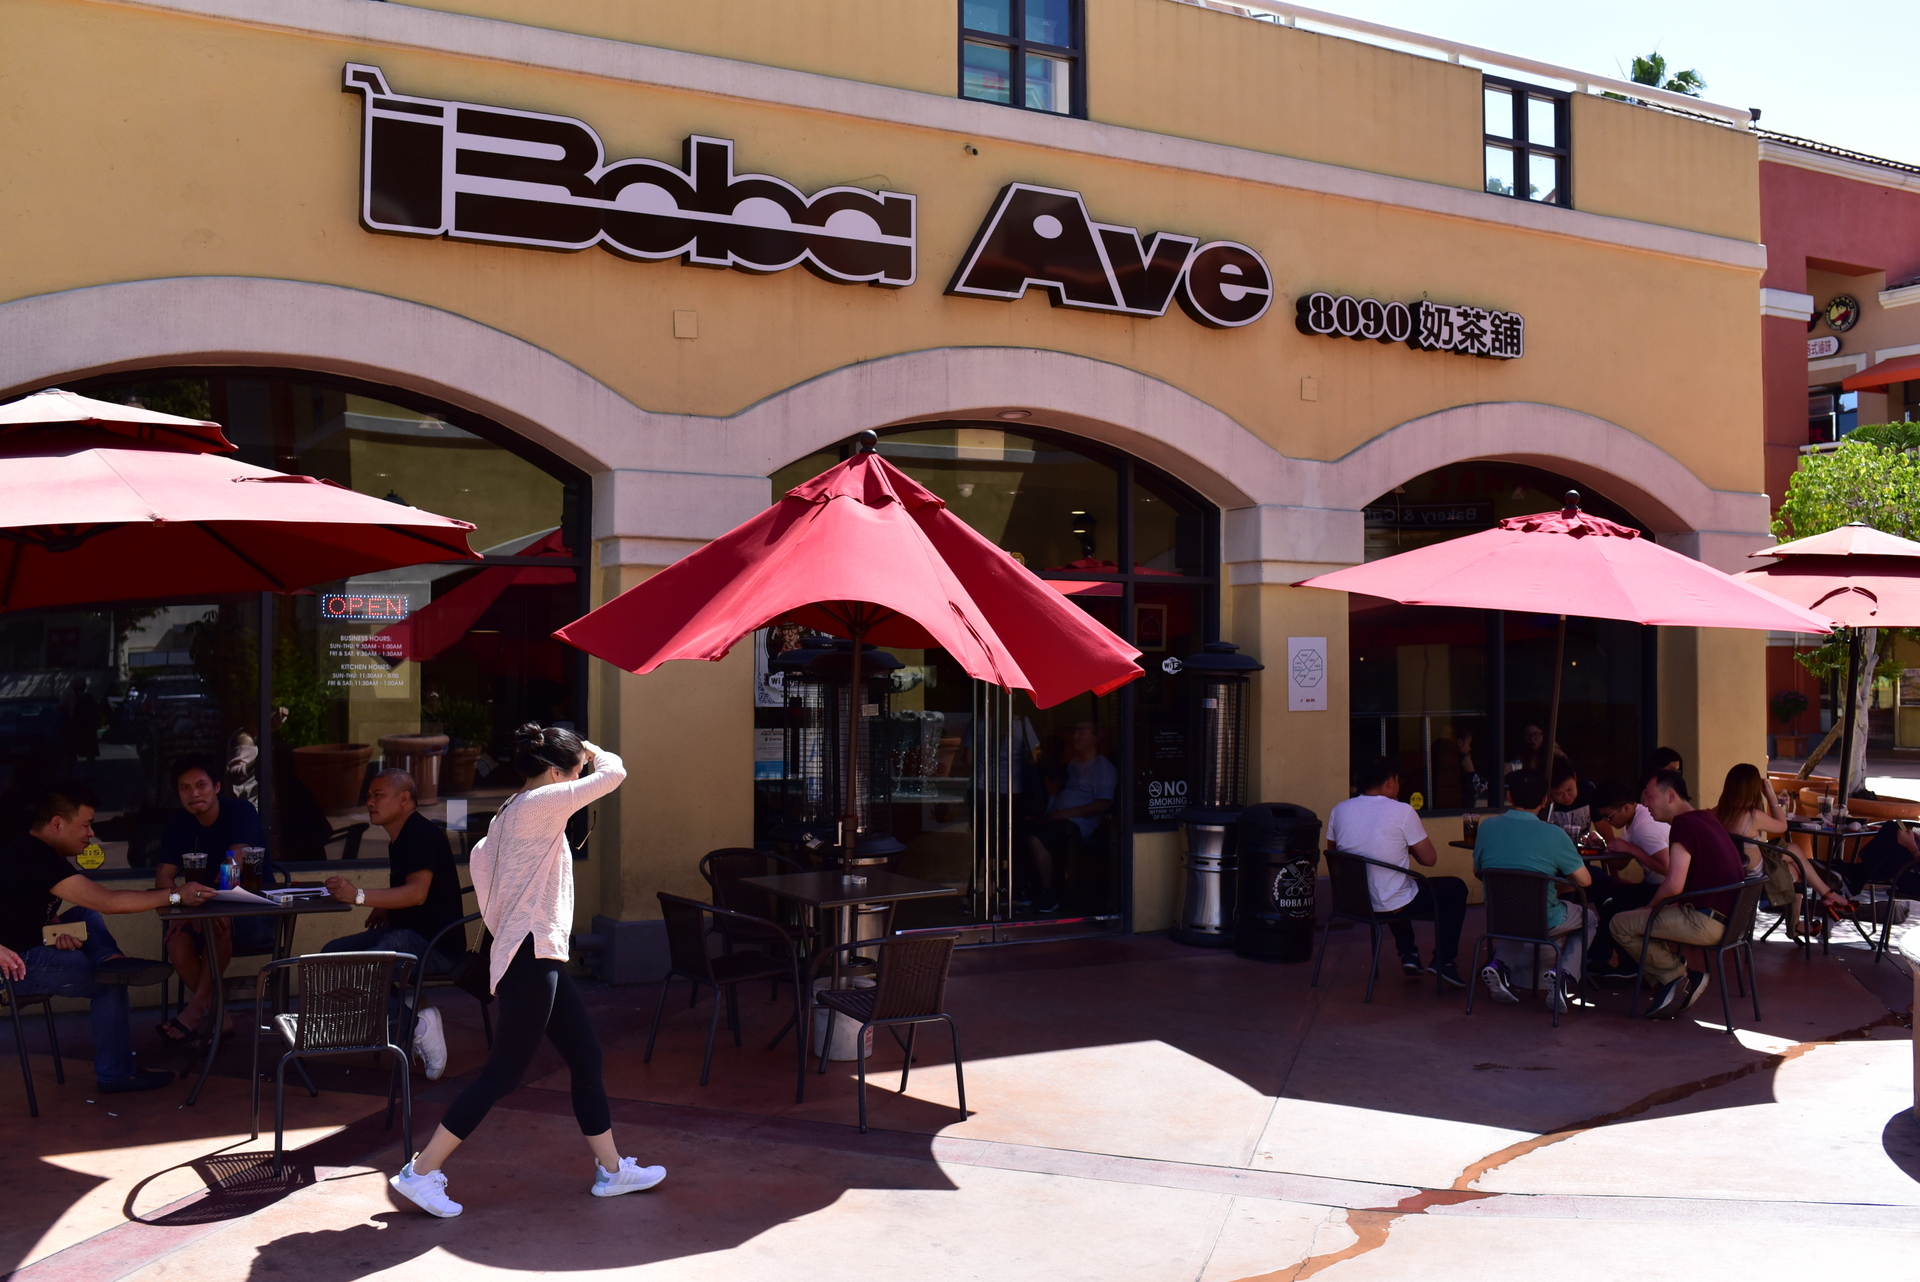 Boba Avenue in San Gabriel Square